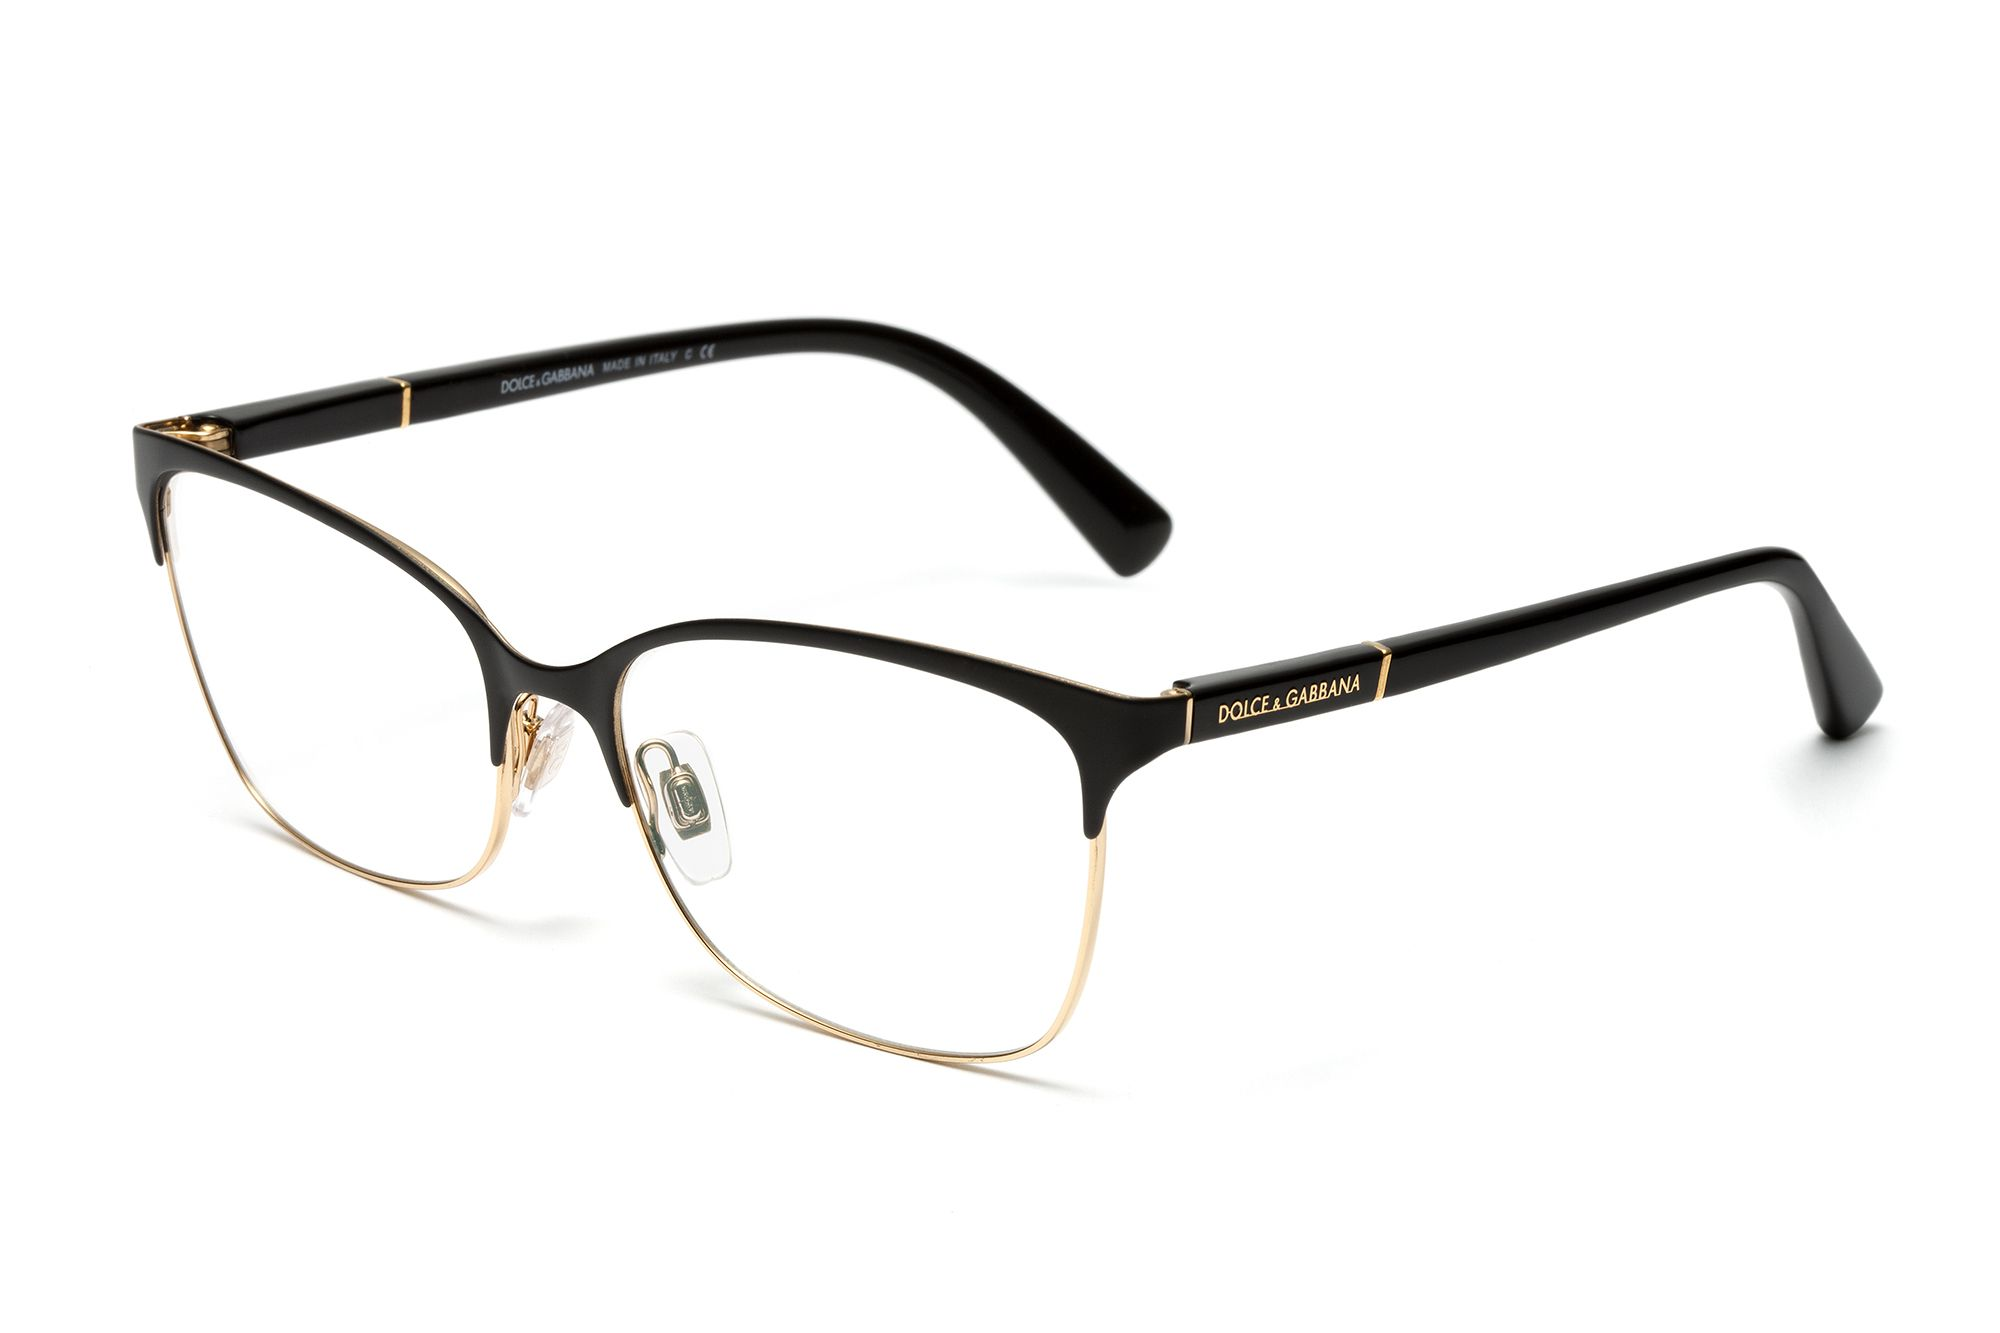 Women S Gold Black Eyeglasses With Square Frame Dolce Gabbana